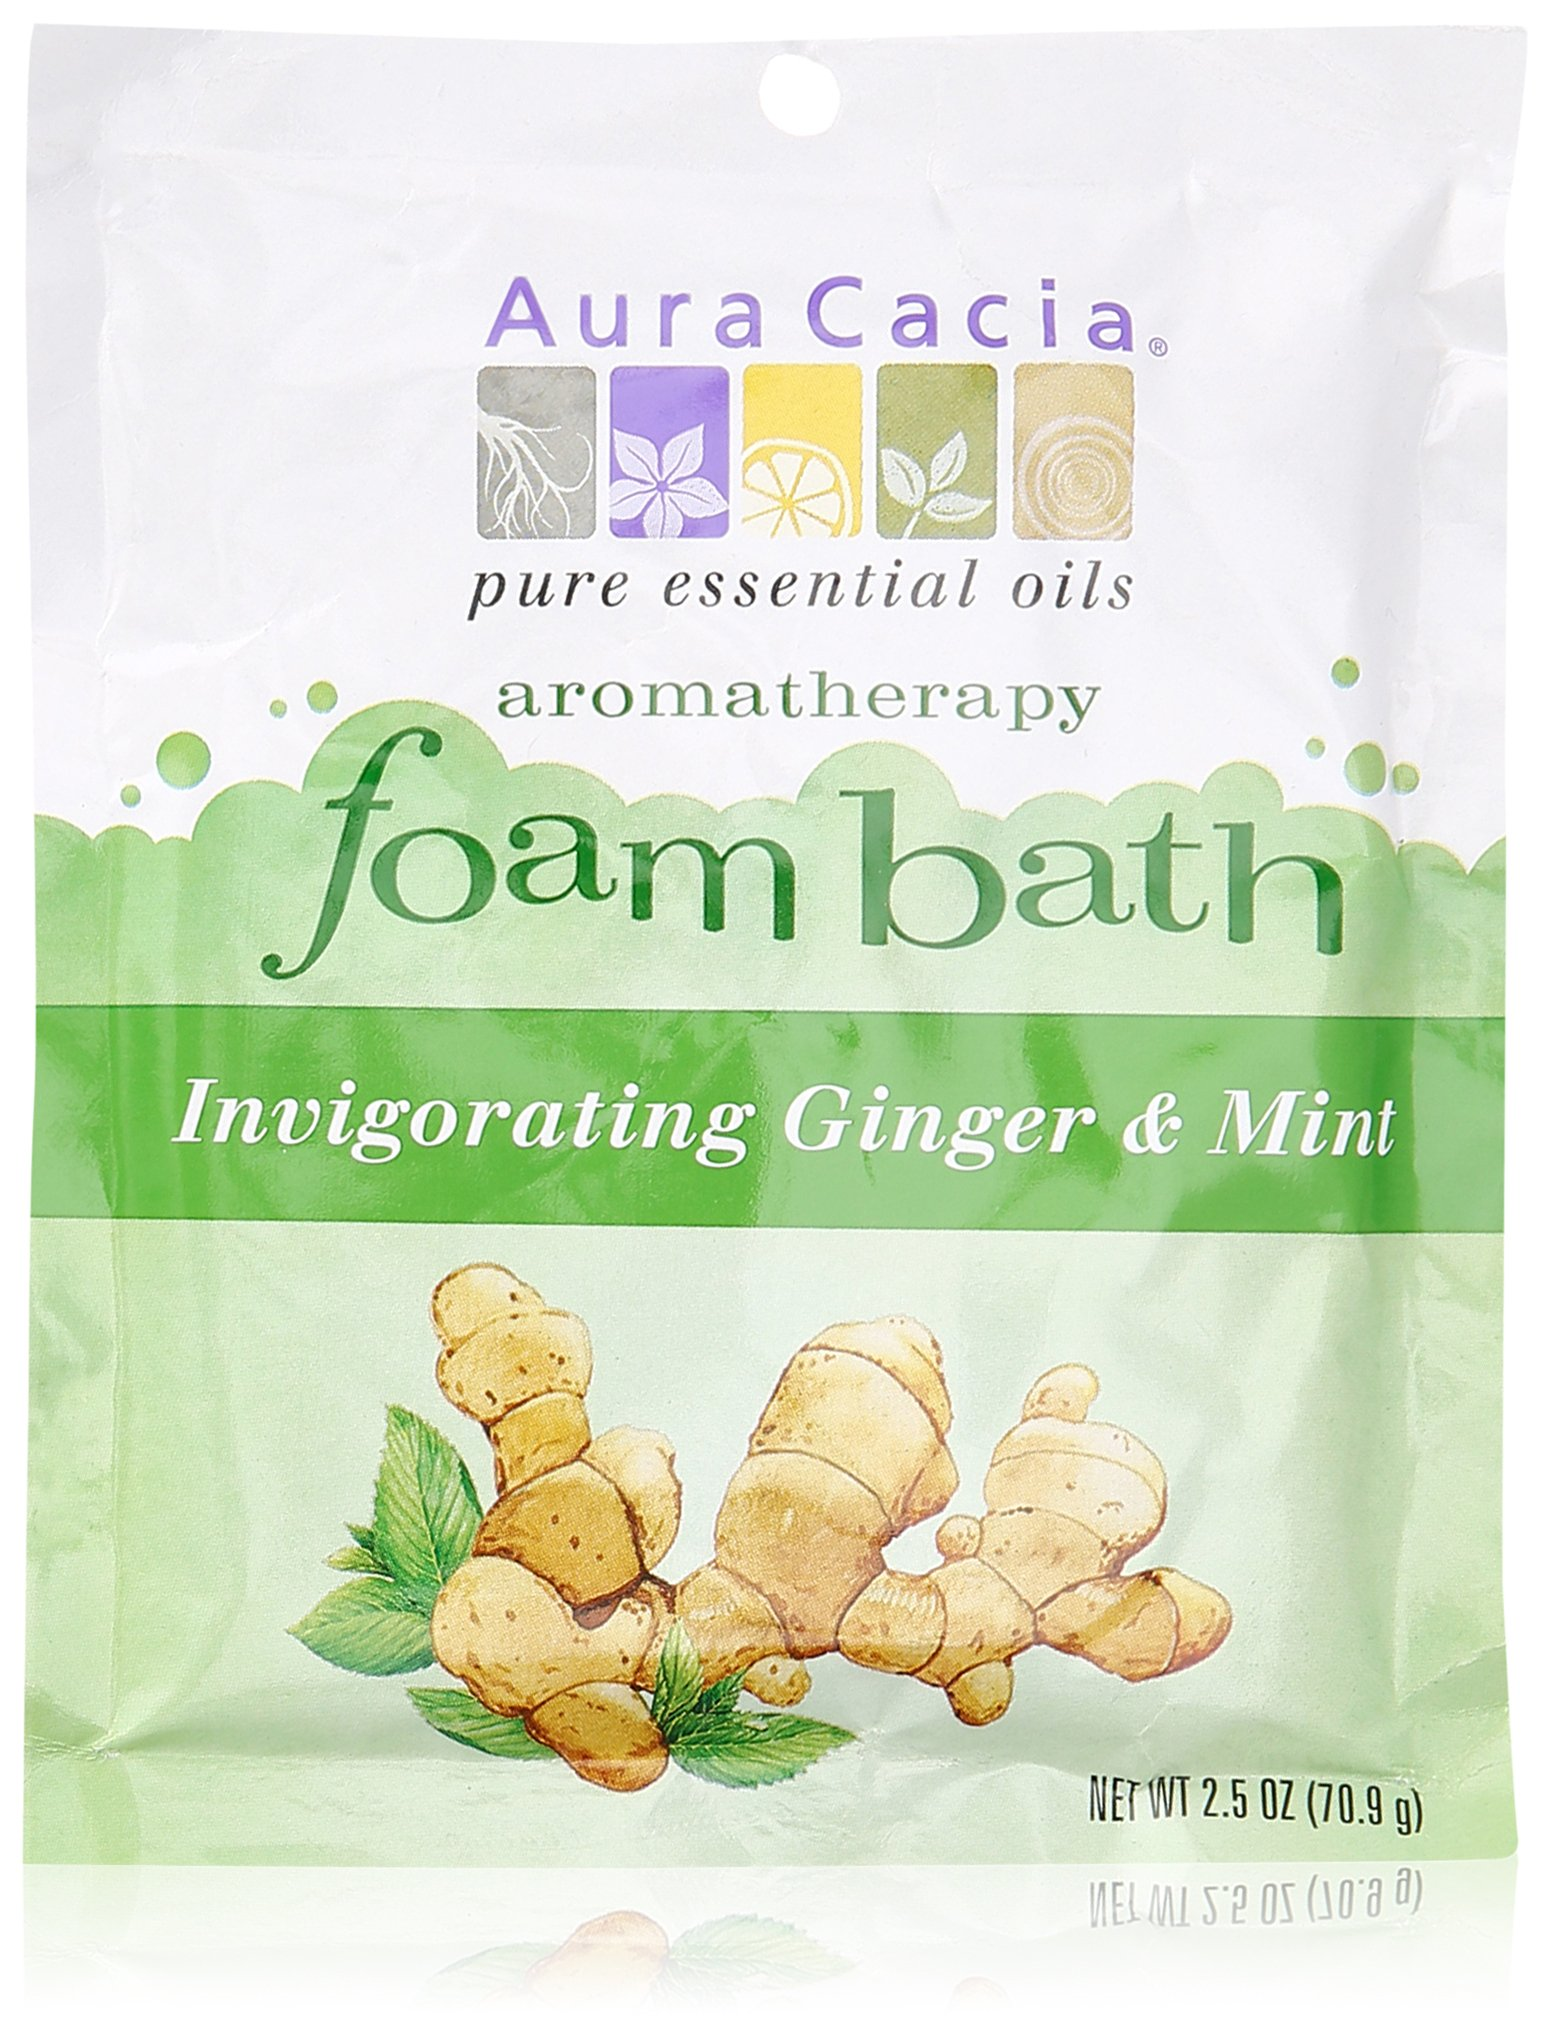 Aura Cacia Aromatherapy Foam Bath, Invigorating Ginger and Mint, 2.5 ounce packet (Pack of 3)